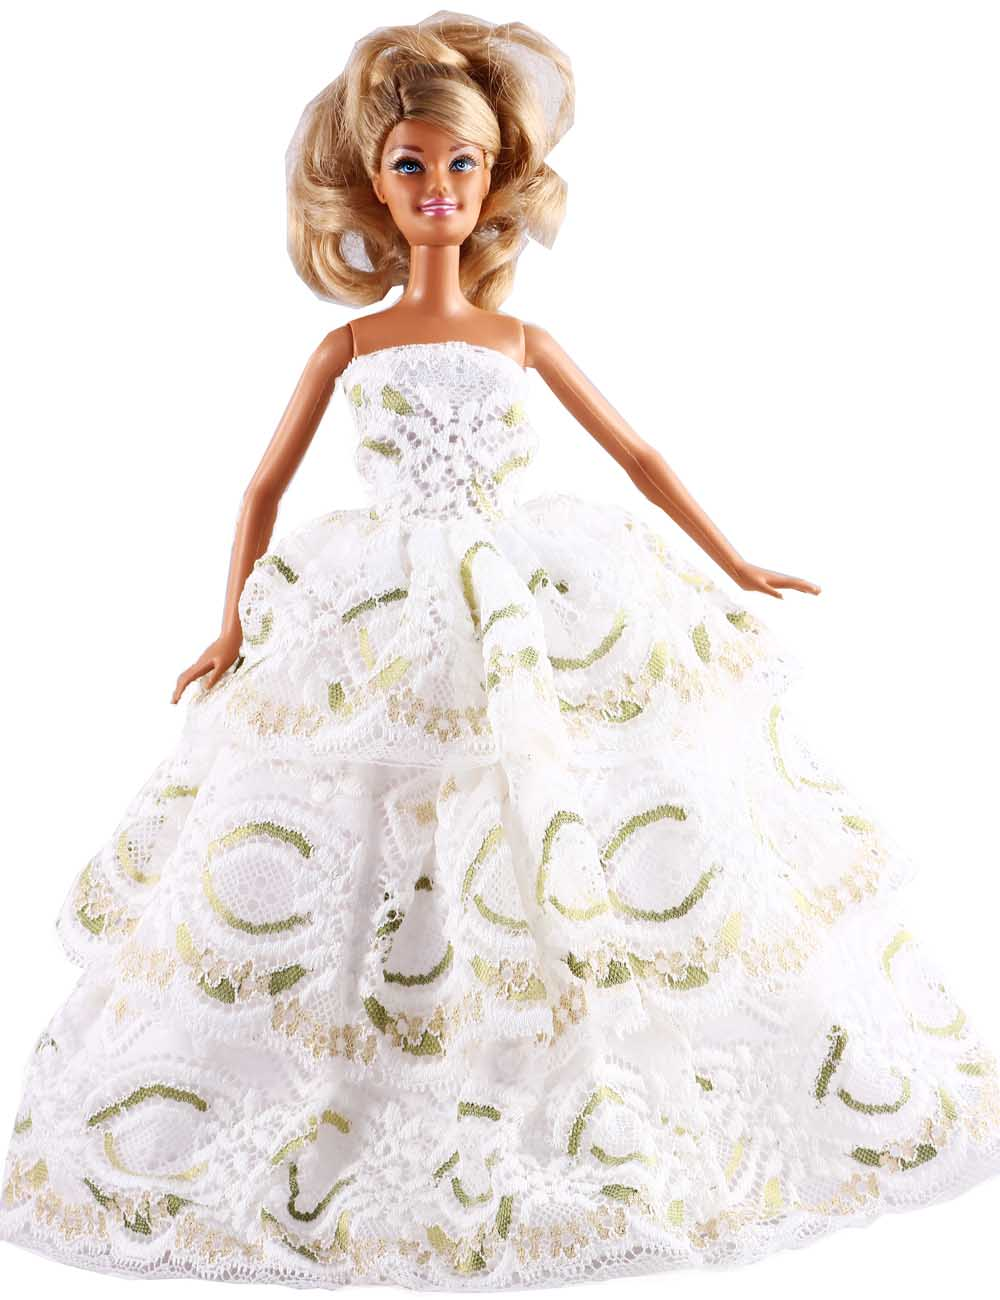 "New Fashion Handmade Three Tier White Lace Dress/Party Dress Clothes Gown For 11"" Barbie Doll D1096(China (Mainland))"